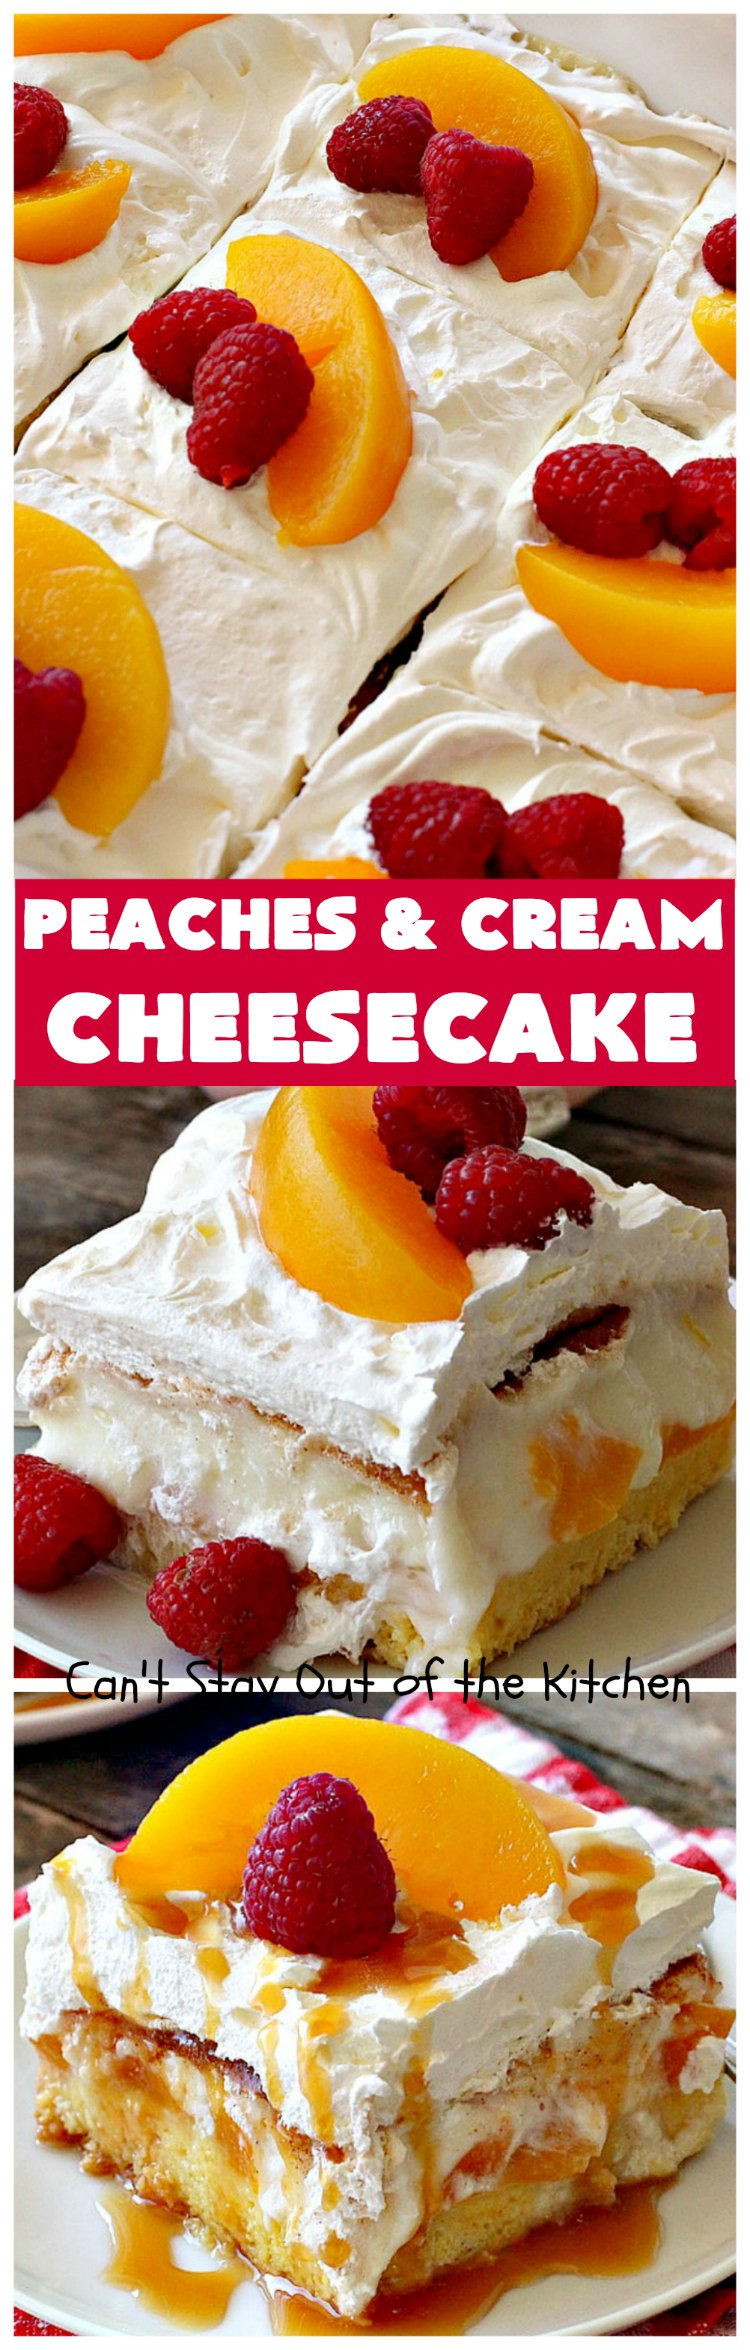 Peaches and Cream Cheesecake | Can't Stay Out of the Kitchen